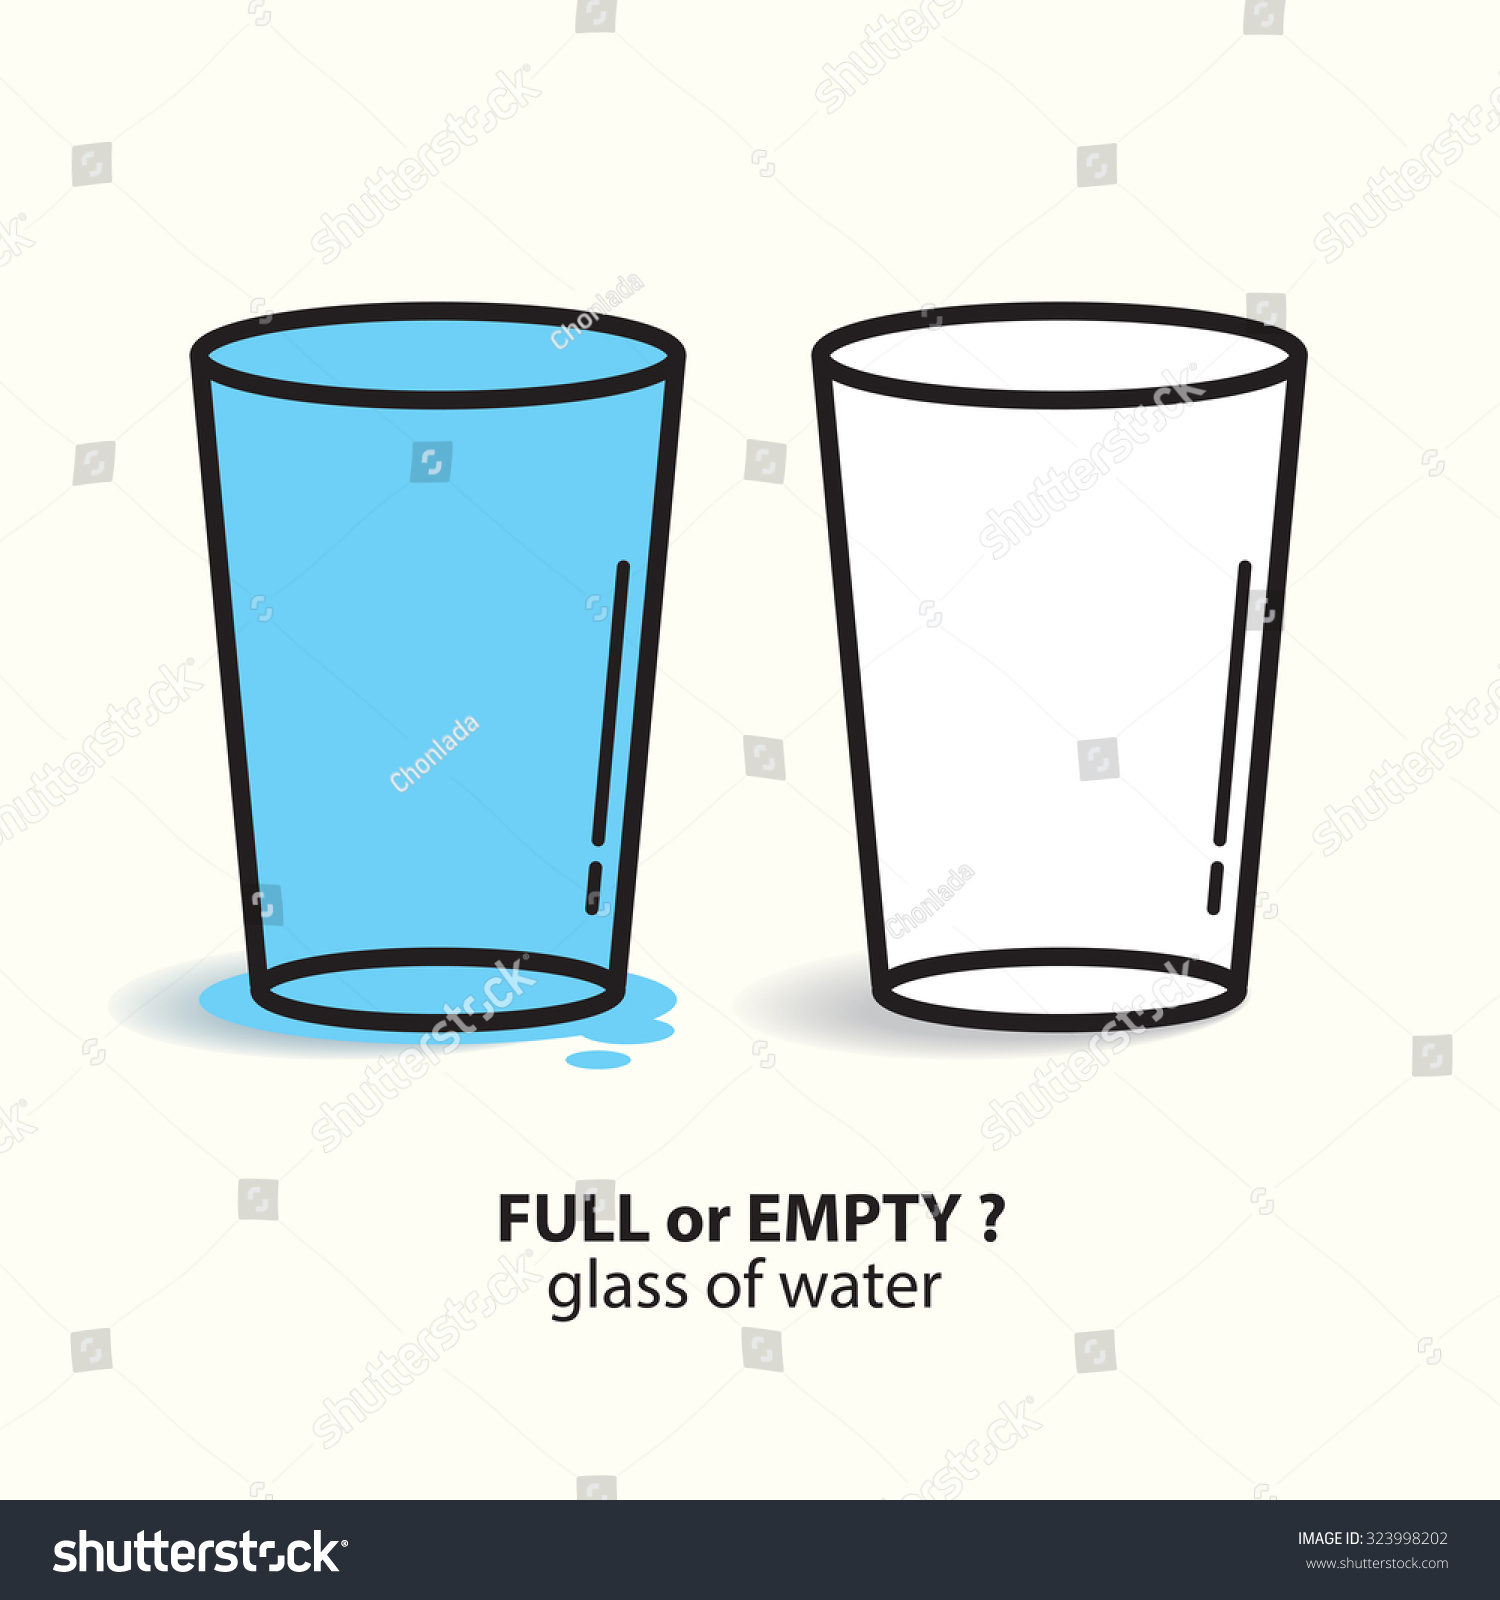 Full Or Empty Glass Of Water Vector Illustration